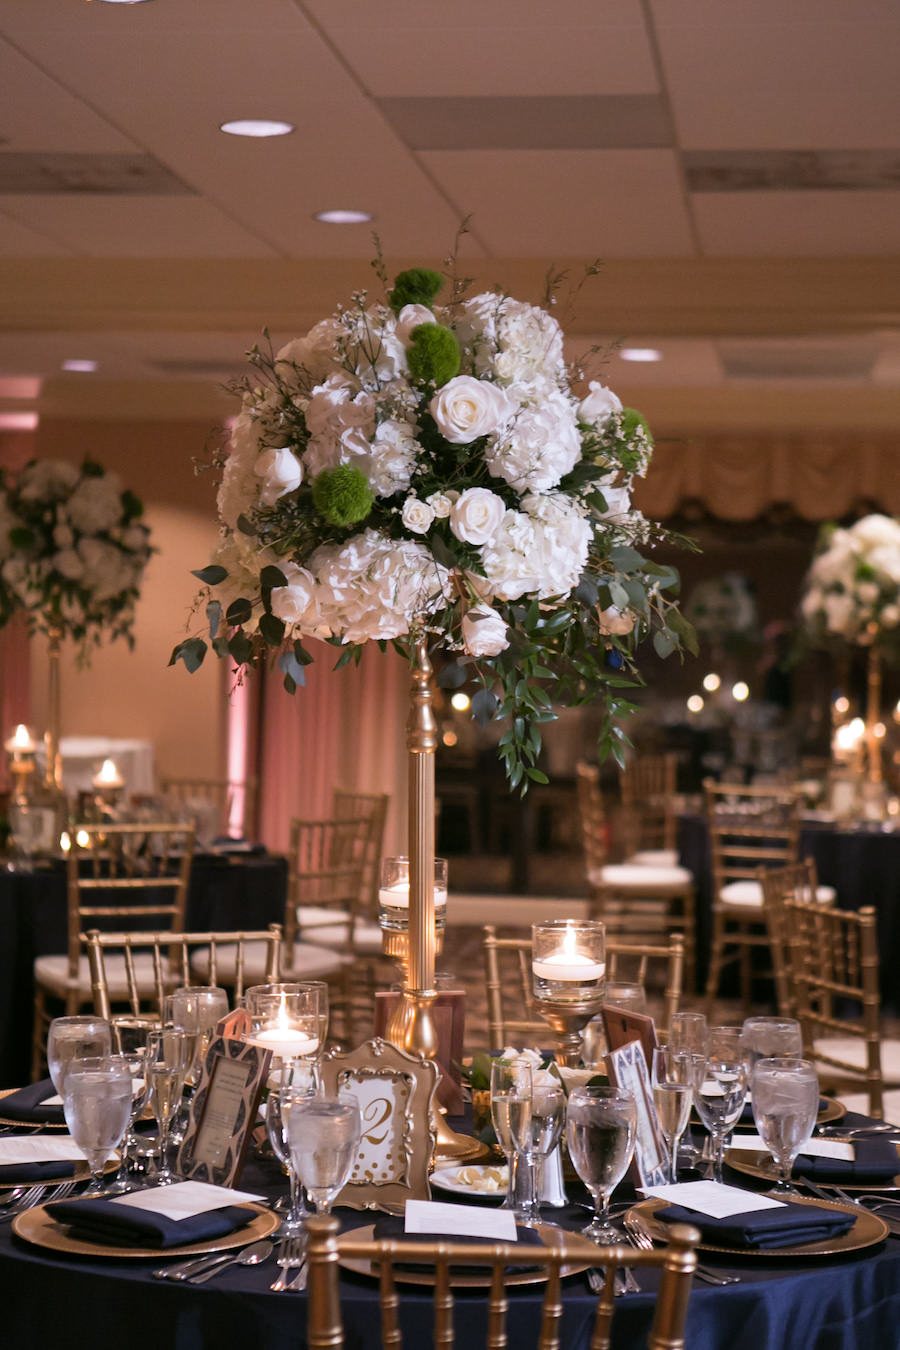 Classic Gold and Navy Wedding Reception Decor with Gold Chiavari Chairs and Tall White Rose, Hydrangea, and Greenery Centerpieces with Navy Blue Linens   Tampa Bay Wedding Venue The Tampa Club   Northside Florist